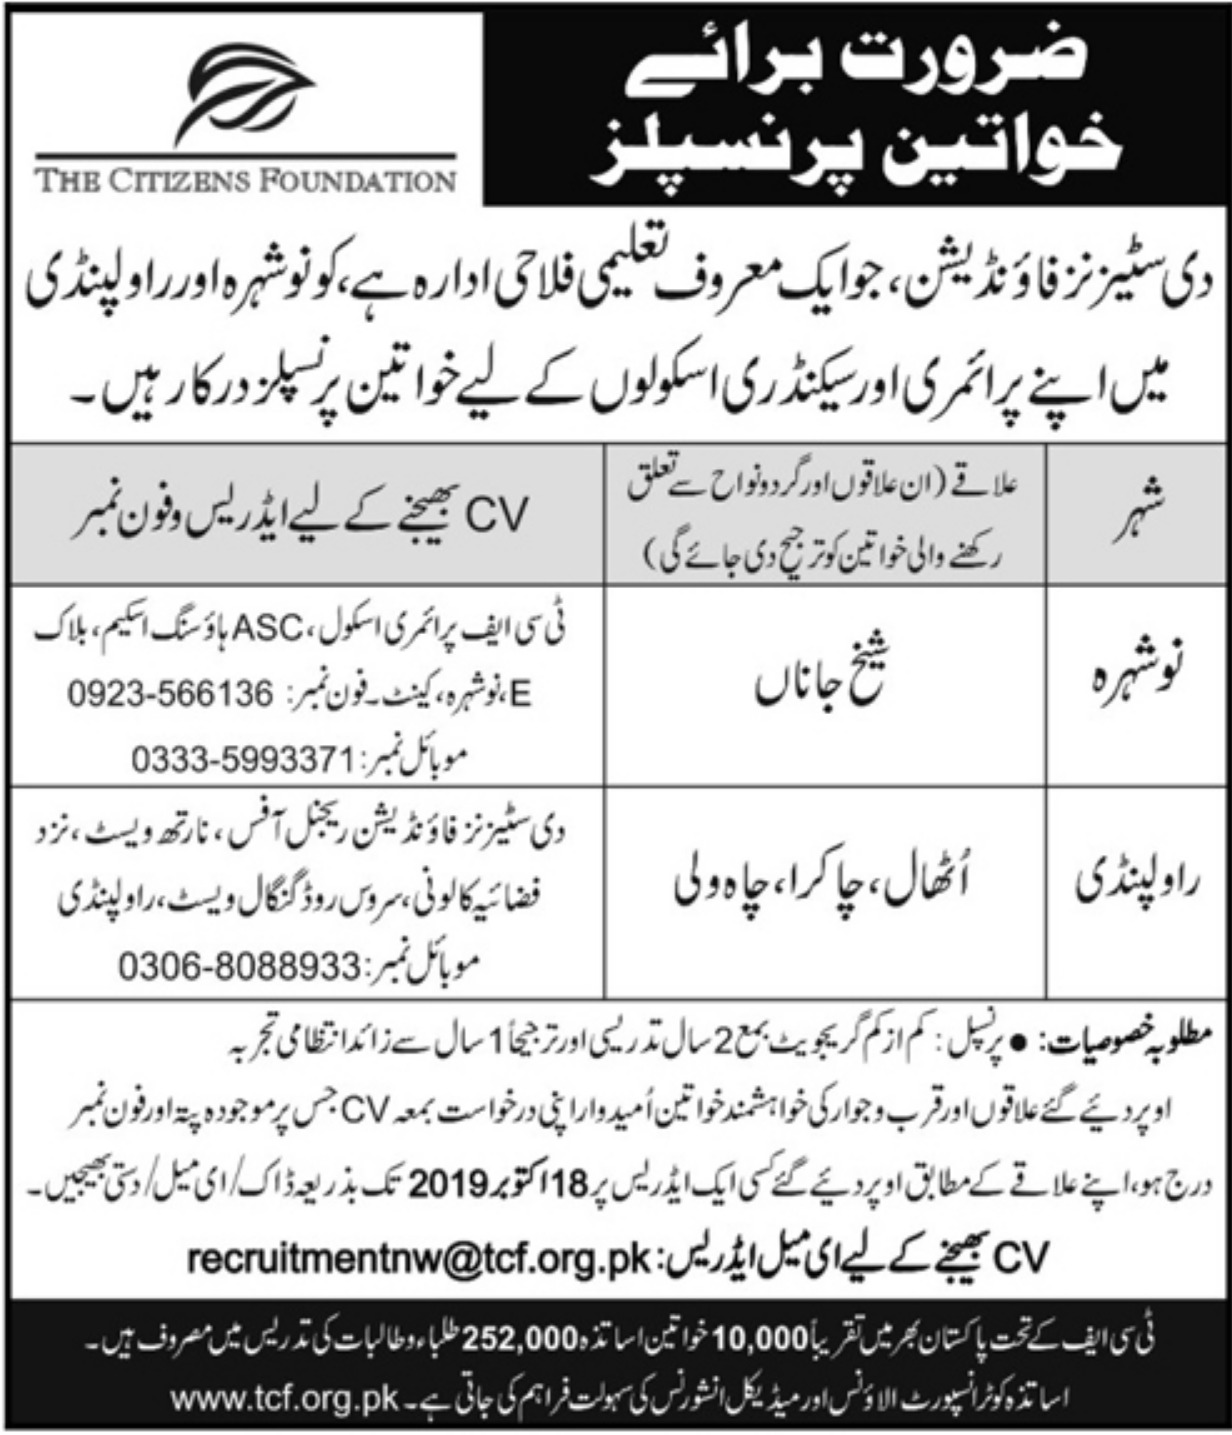 The Citizens Foundation Jobs 2019